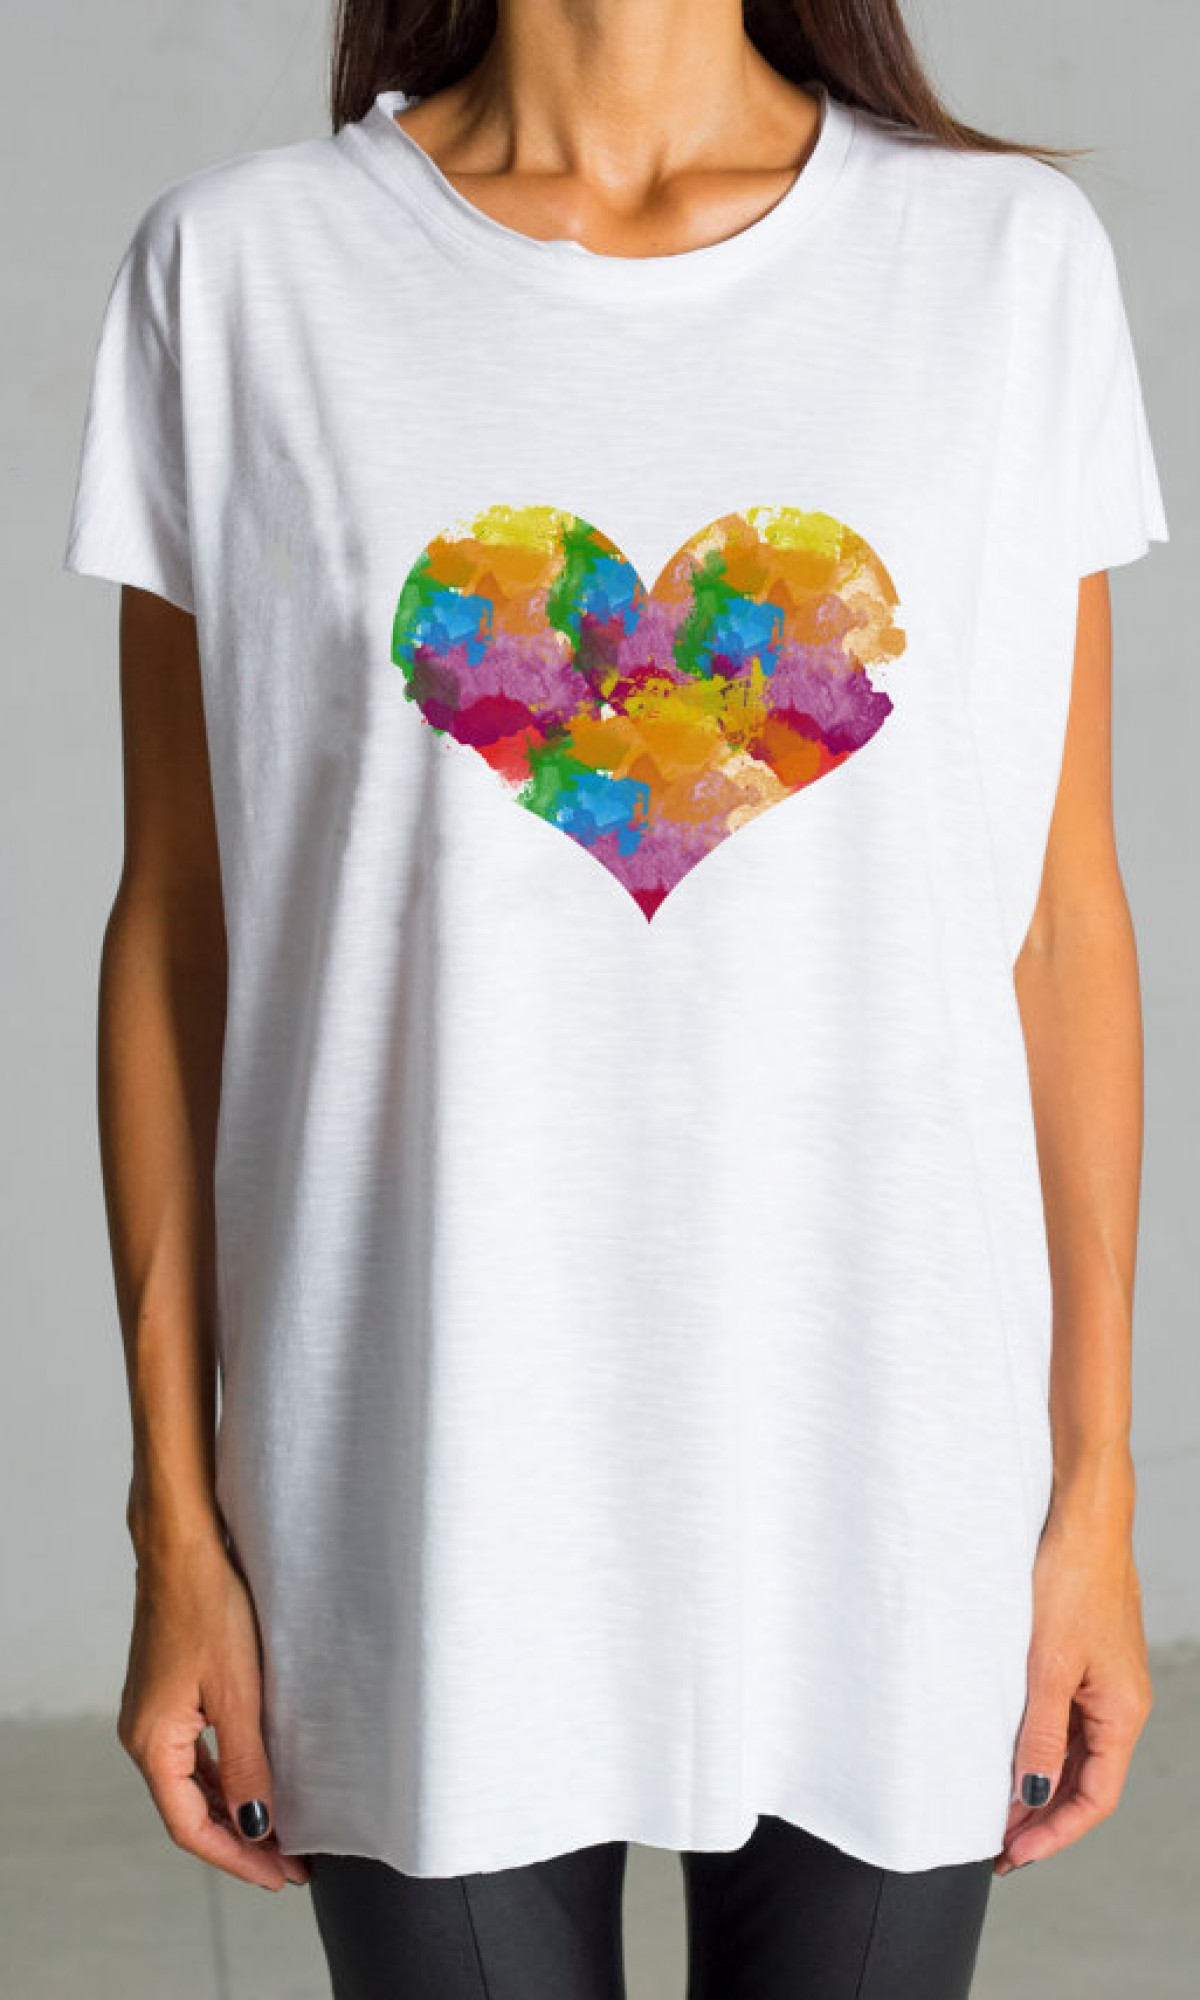 Cute Multicolored Heart Print White Tee